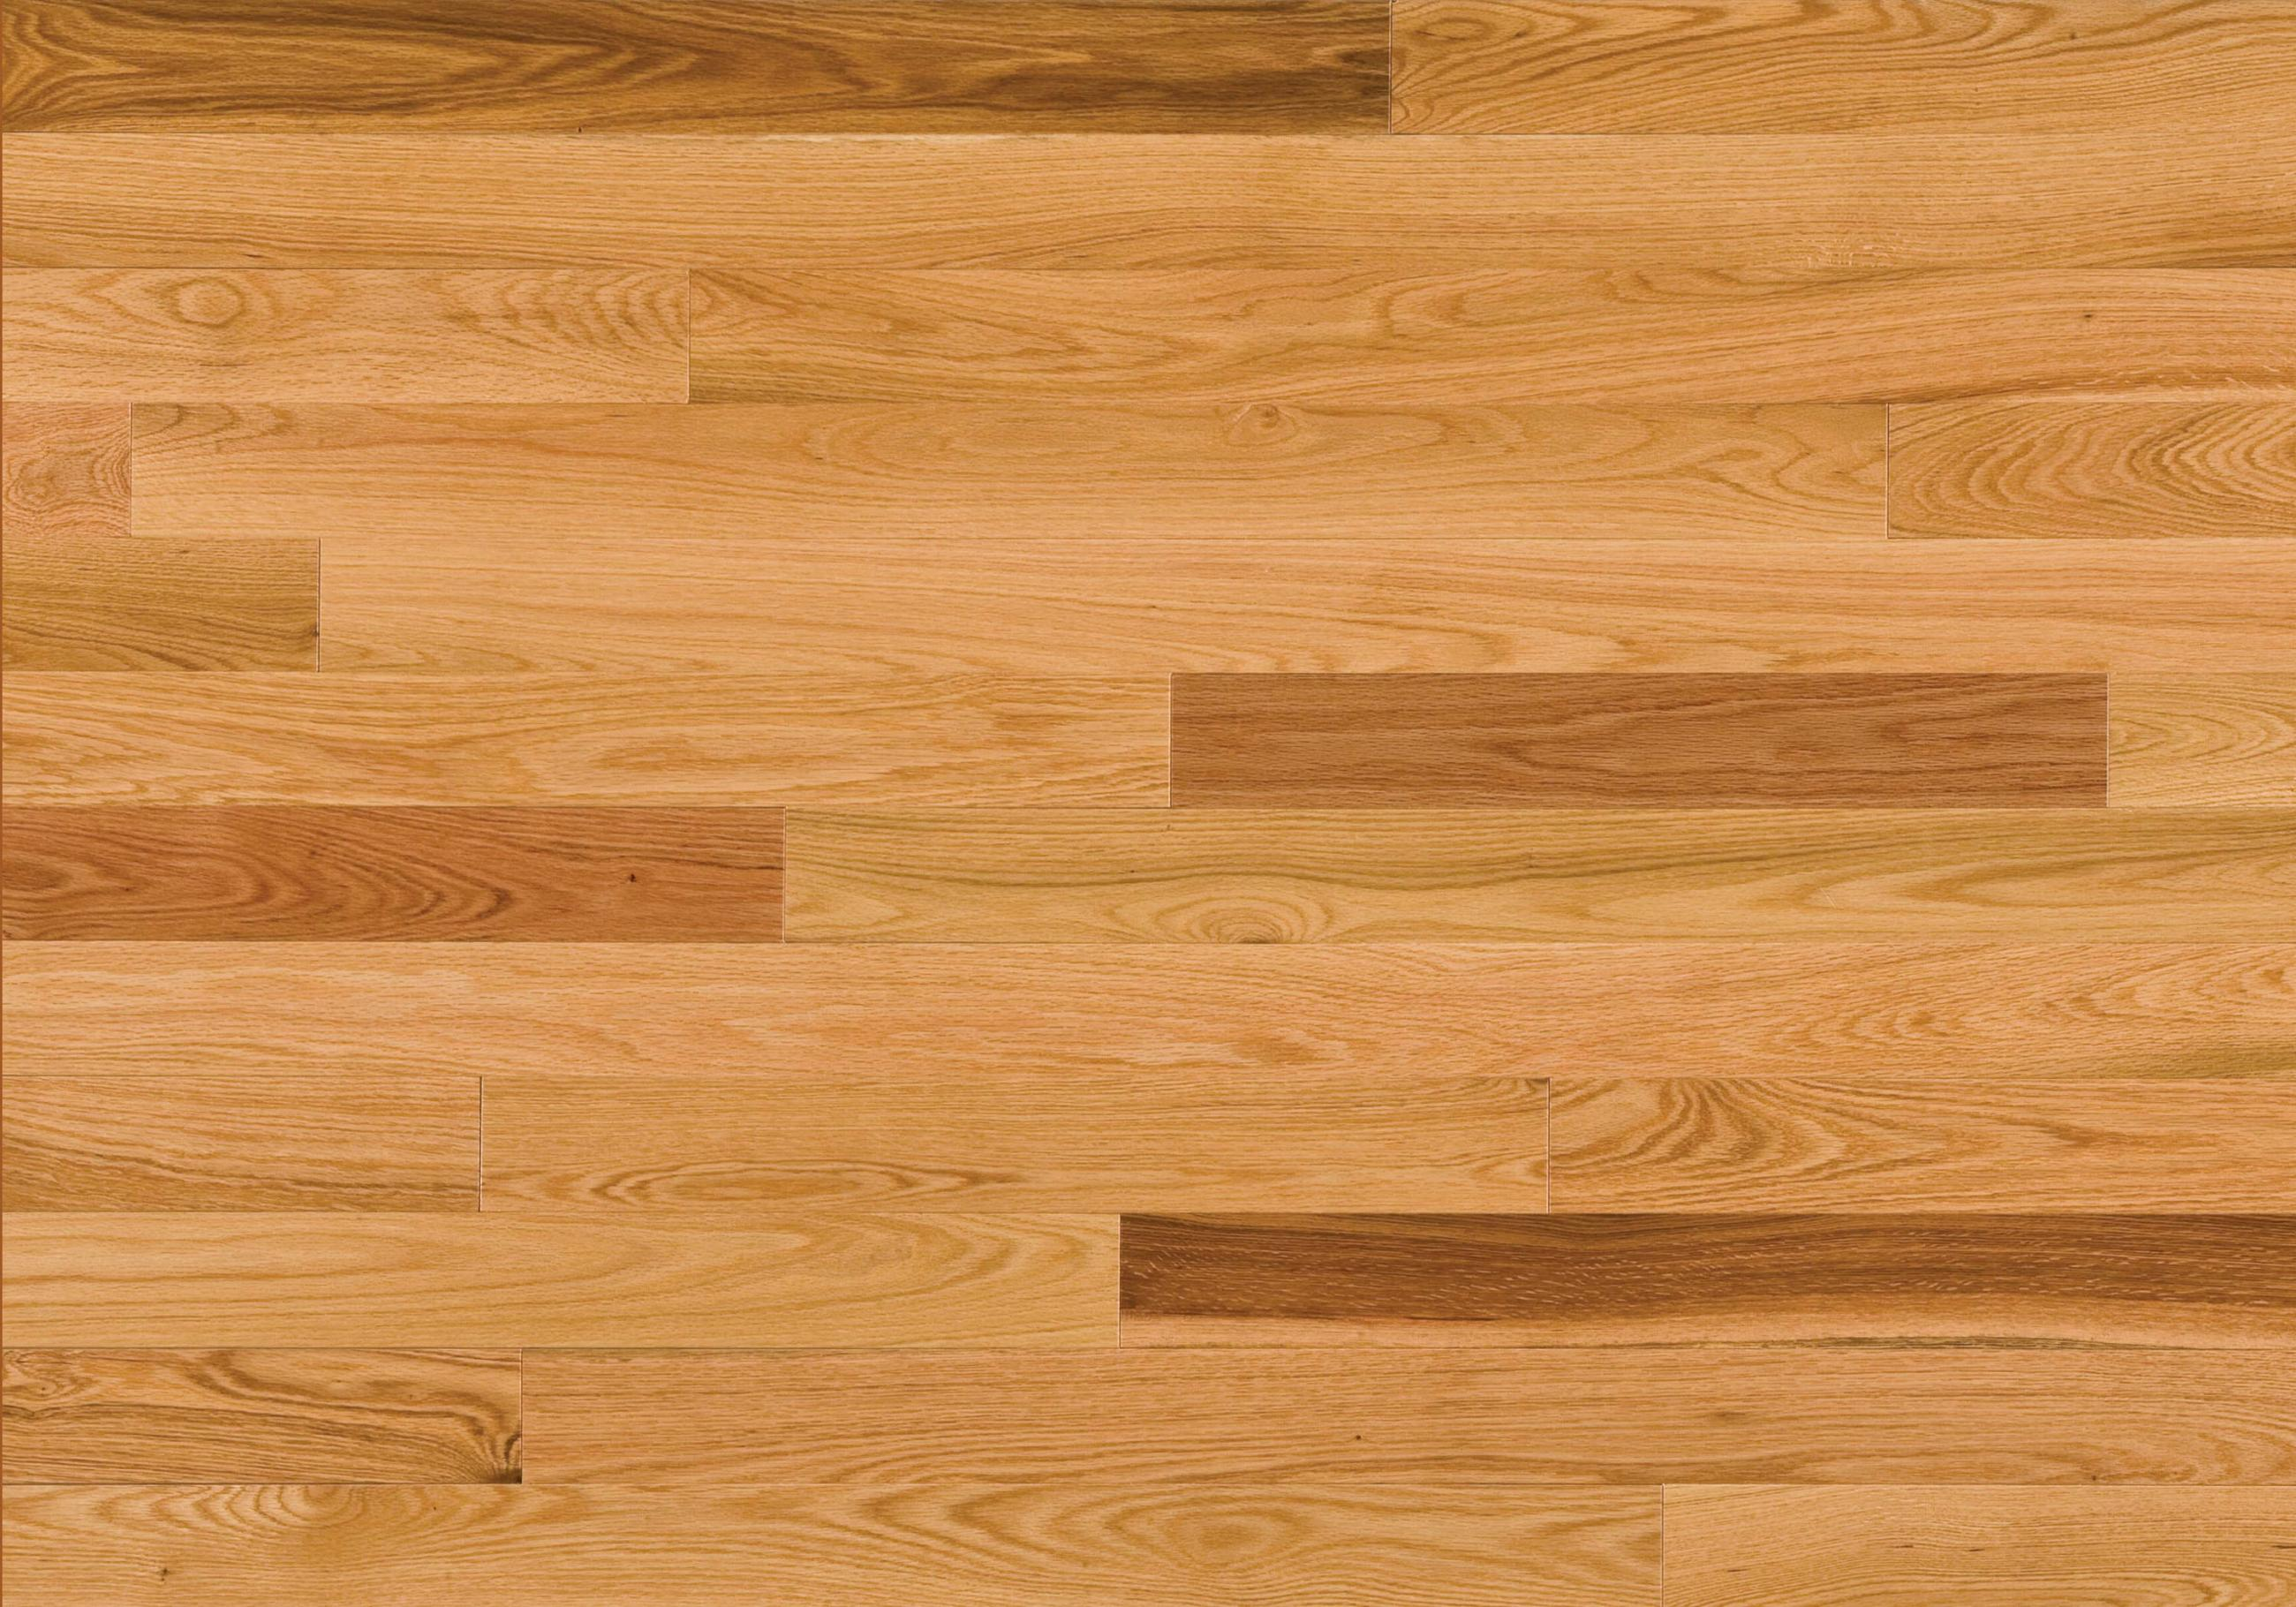 Engineered hardwood flooring specialty store in anaheim ca for Natural floors